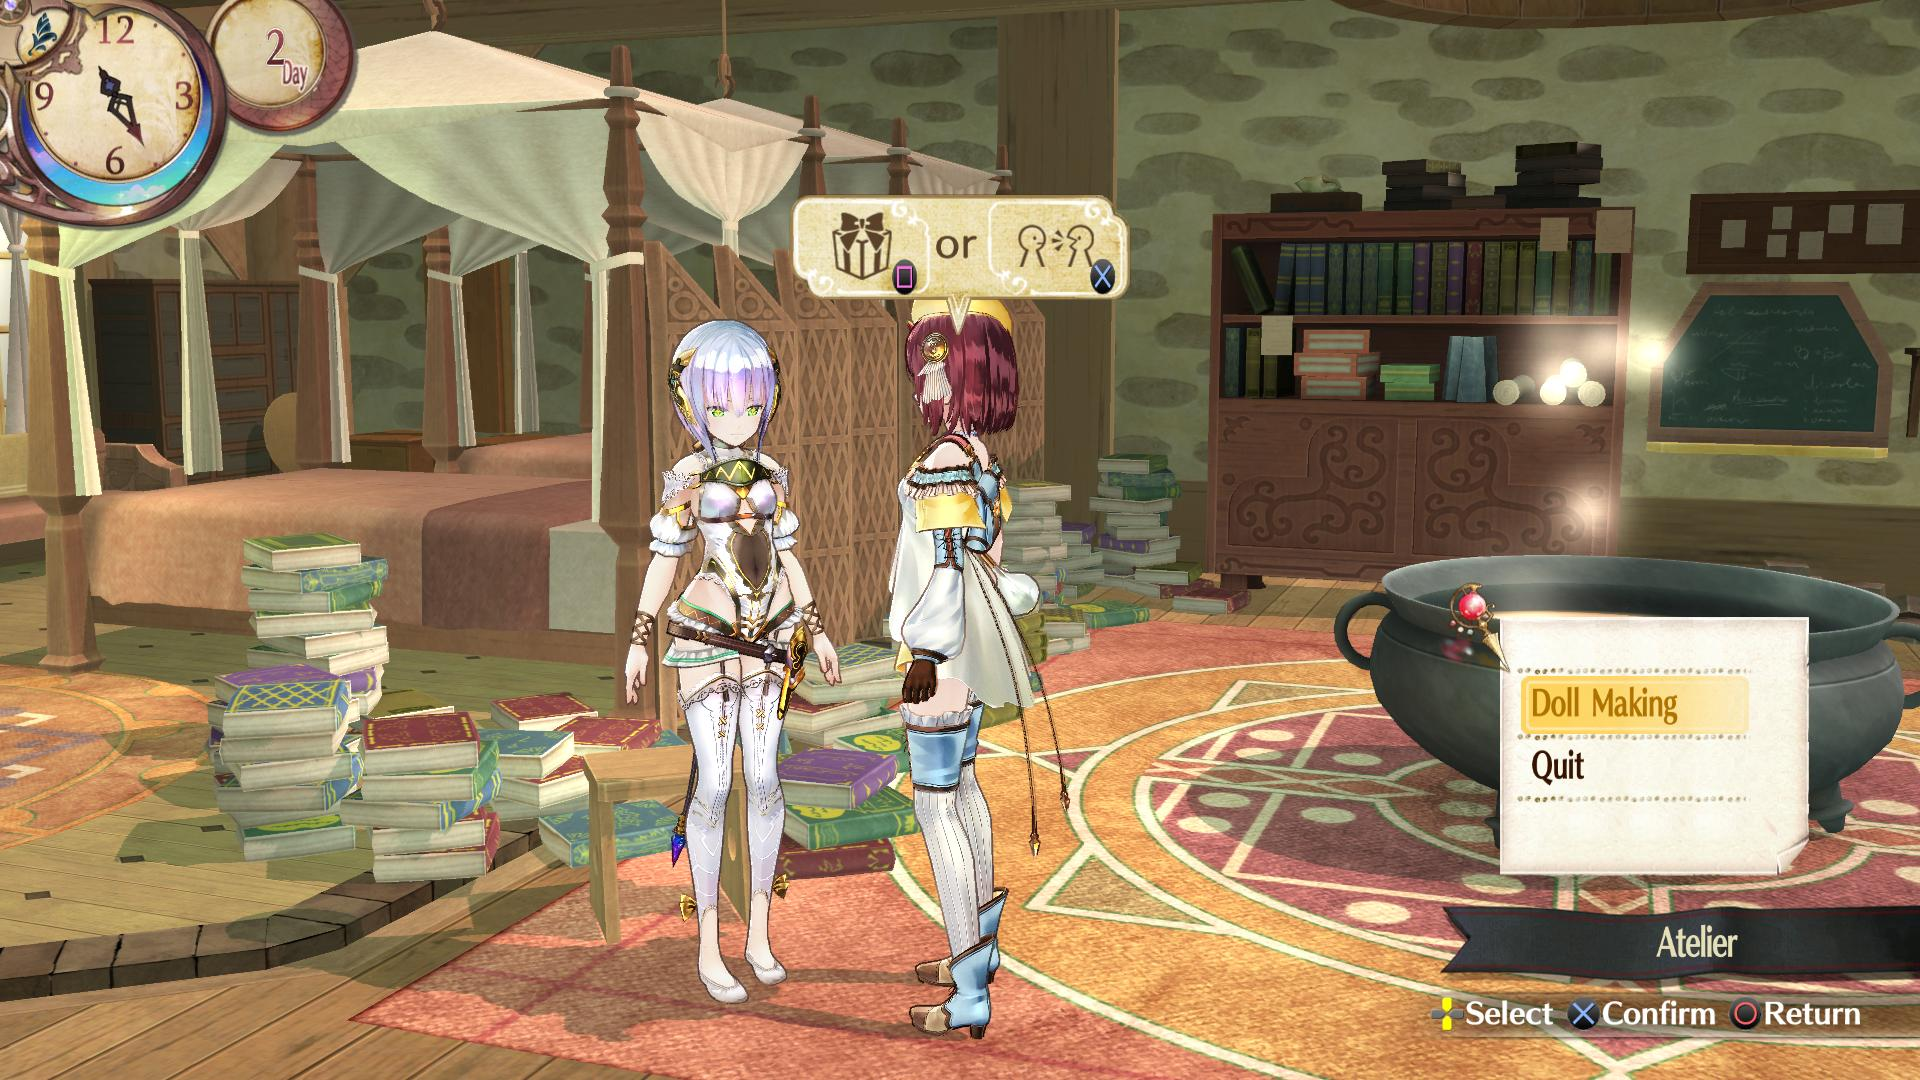 AtelierSophie_Dollmake2_bmp_jpgcopy